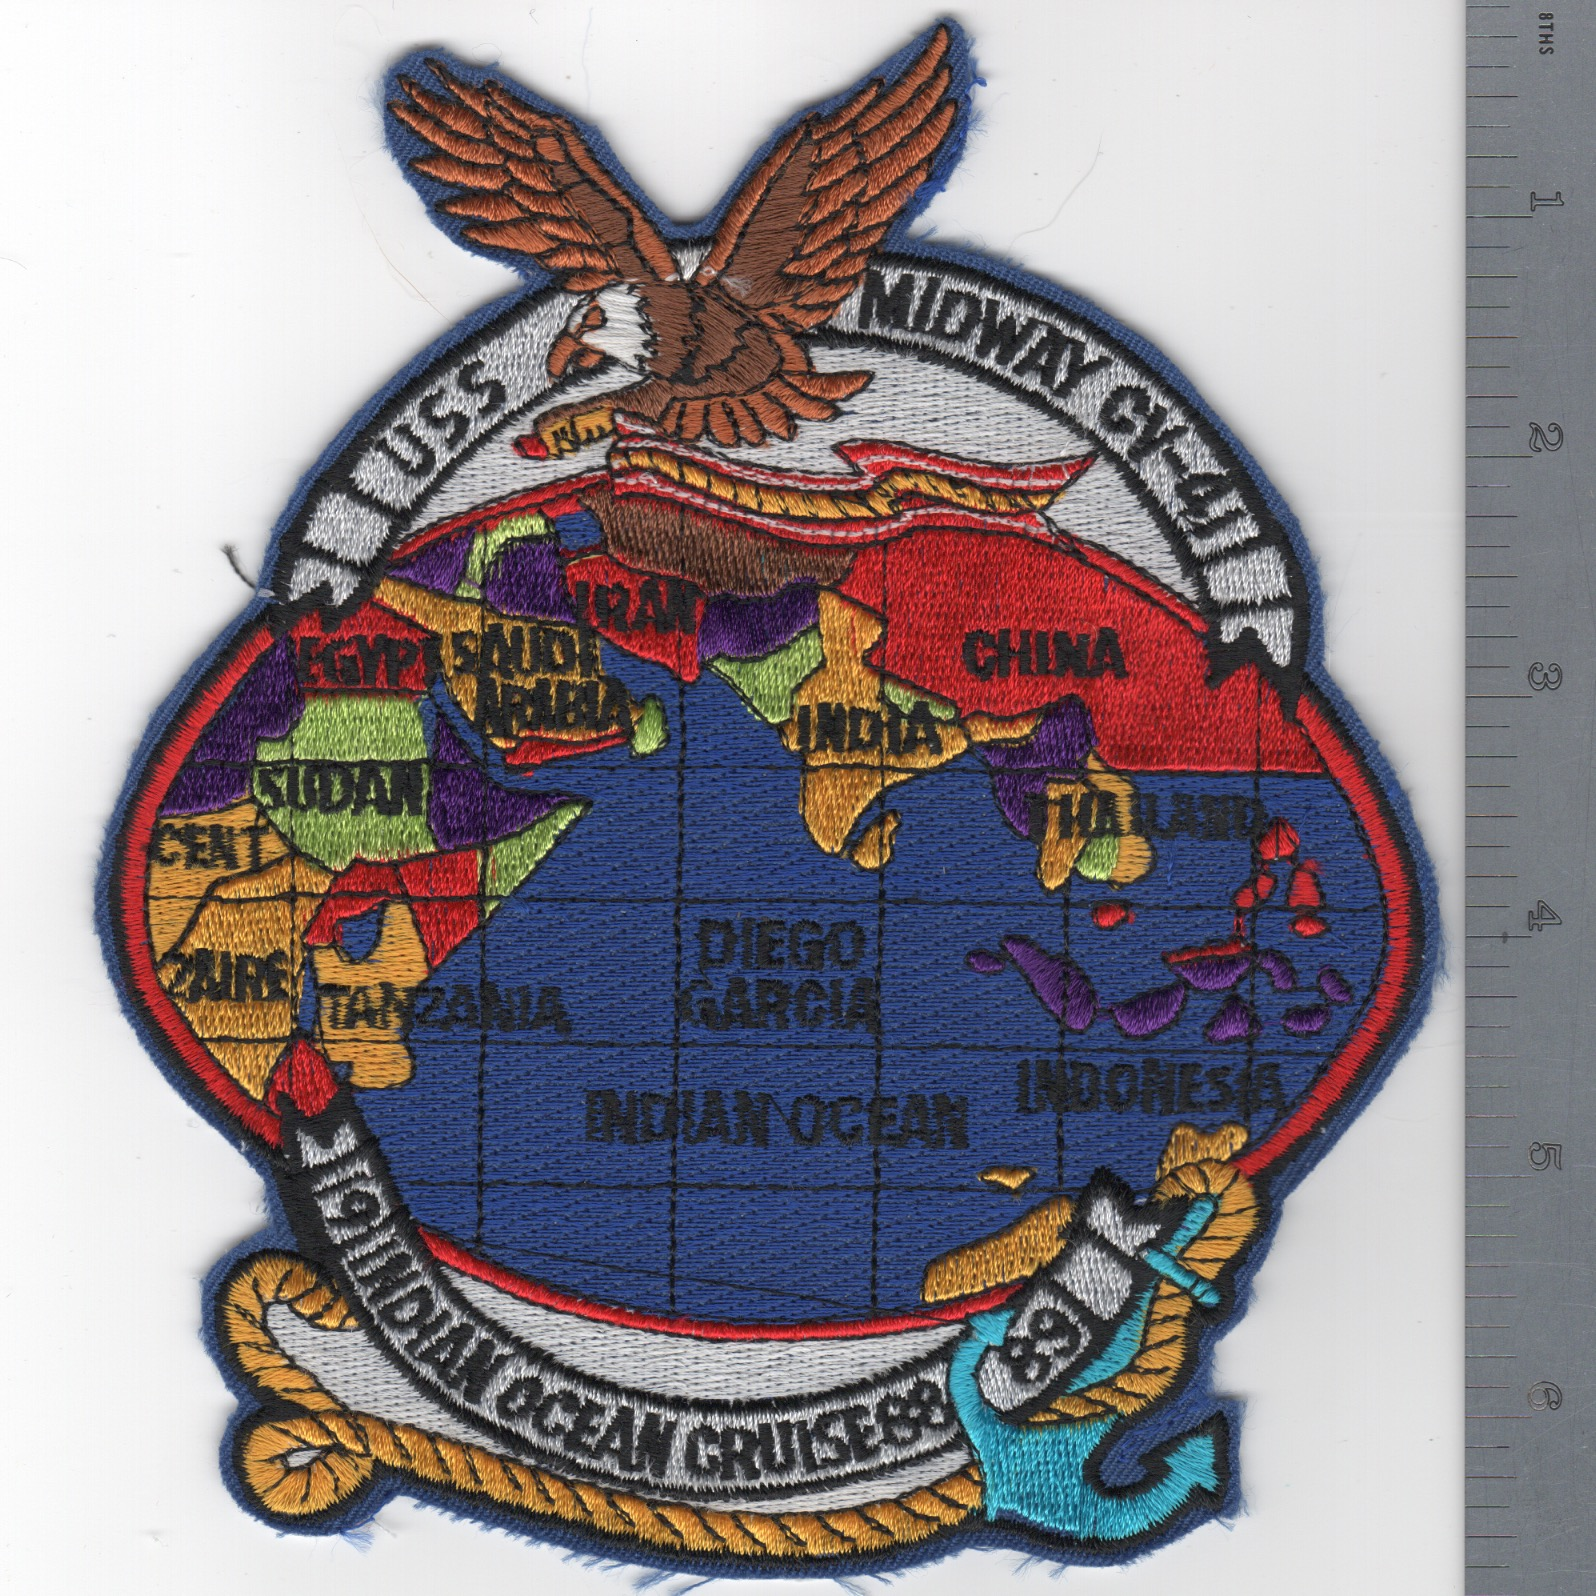 400) CV-41 1988-89 I.O. Cruise Patch (Large)